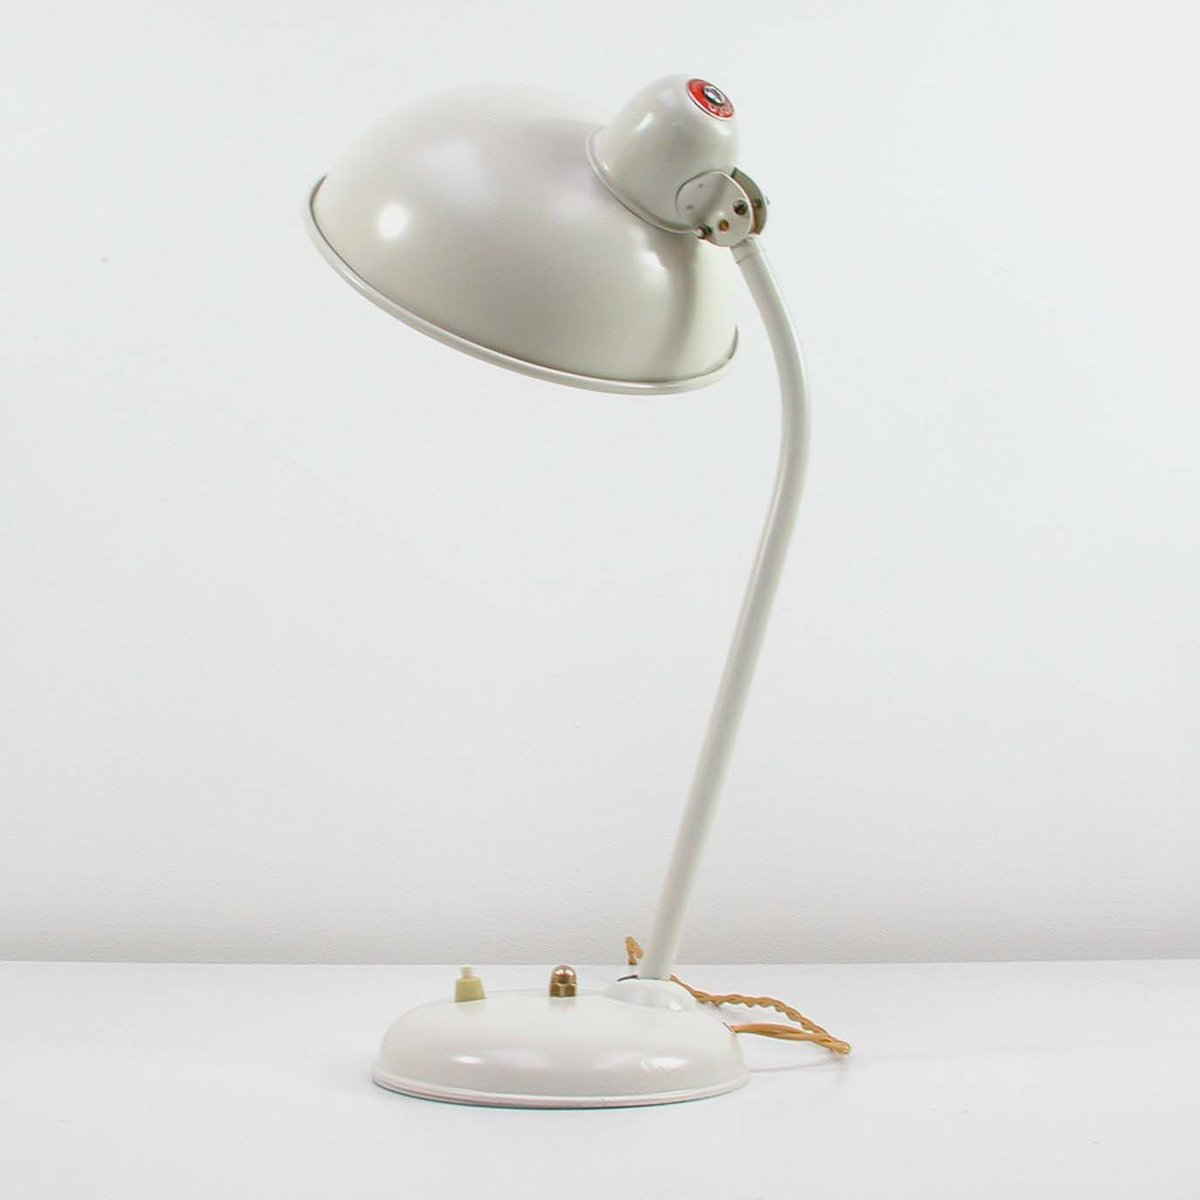 vintage industrial bauhaus desk lamp from helo for sale at. Black Bedroom Furniture Sets. Home Design Ideas